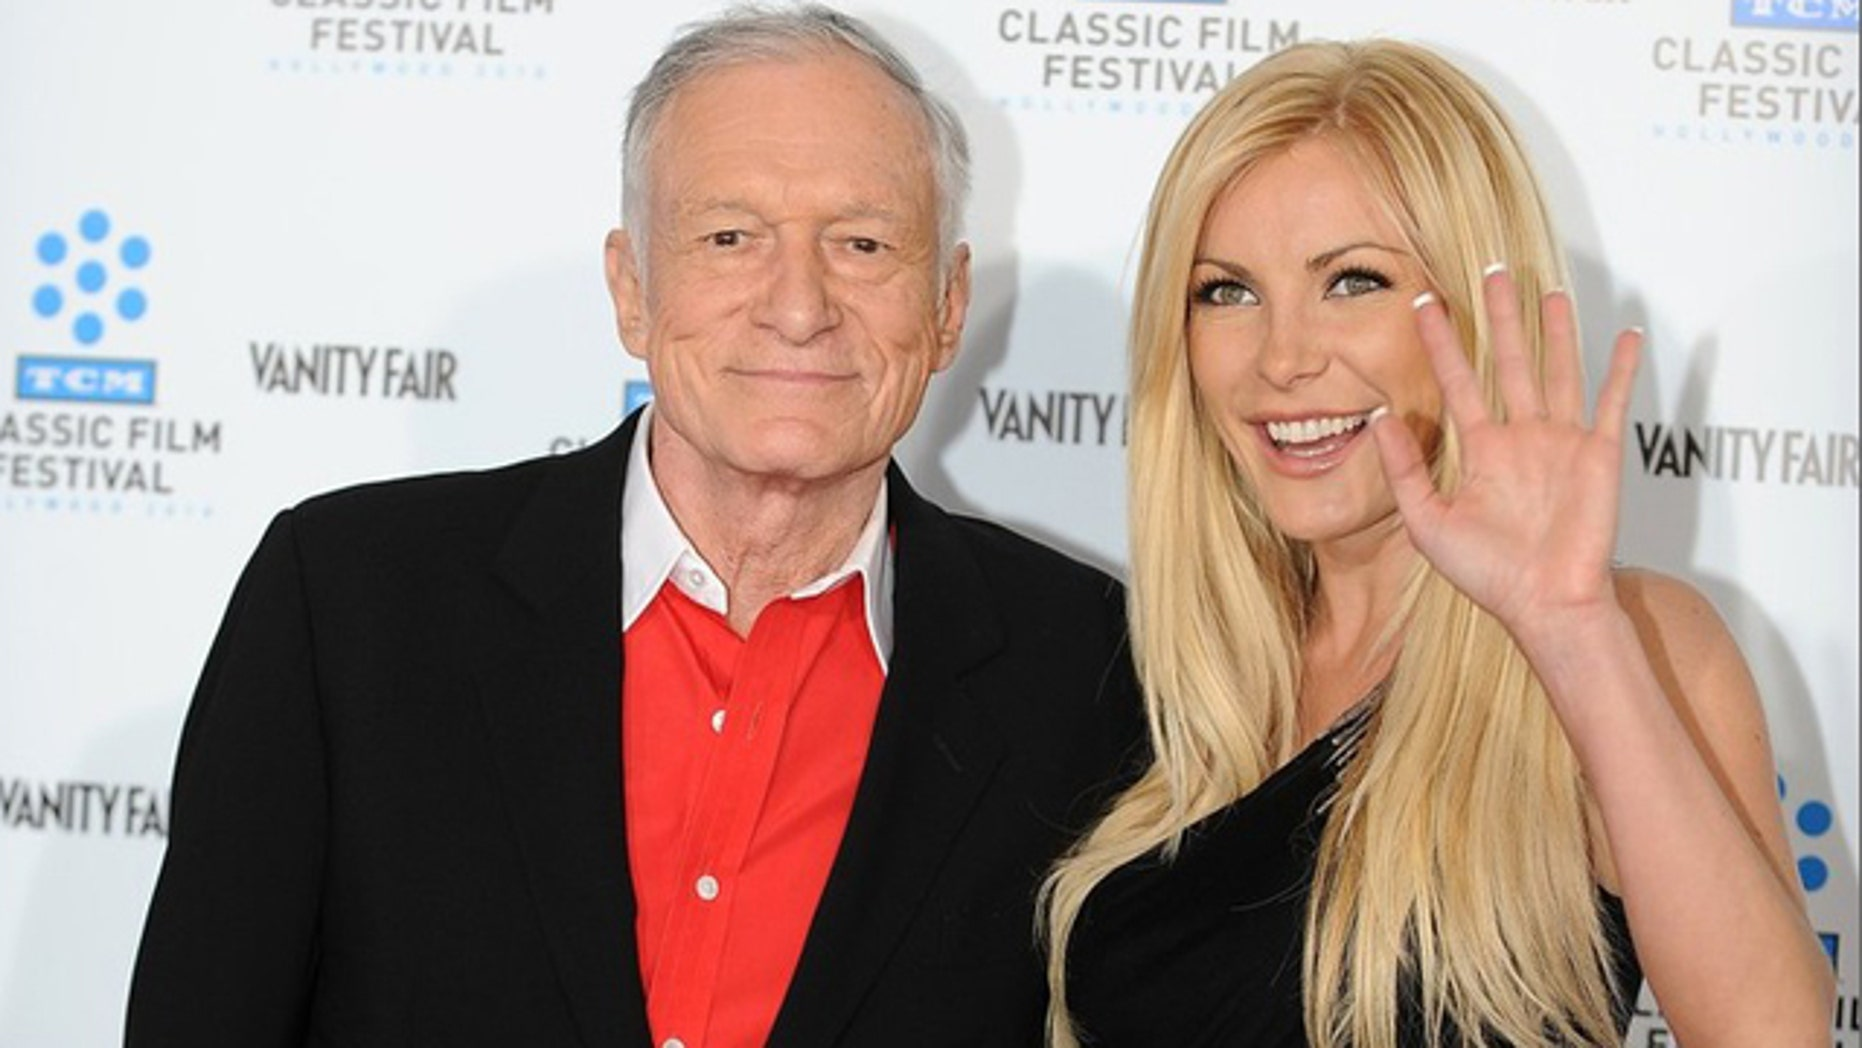 April 22, 2010:Hugh Hefner arrives with Playmate and actress Crystal Harris